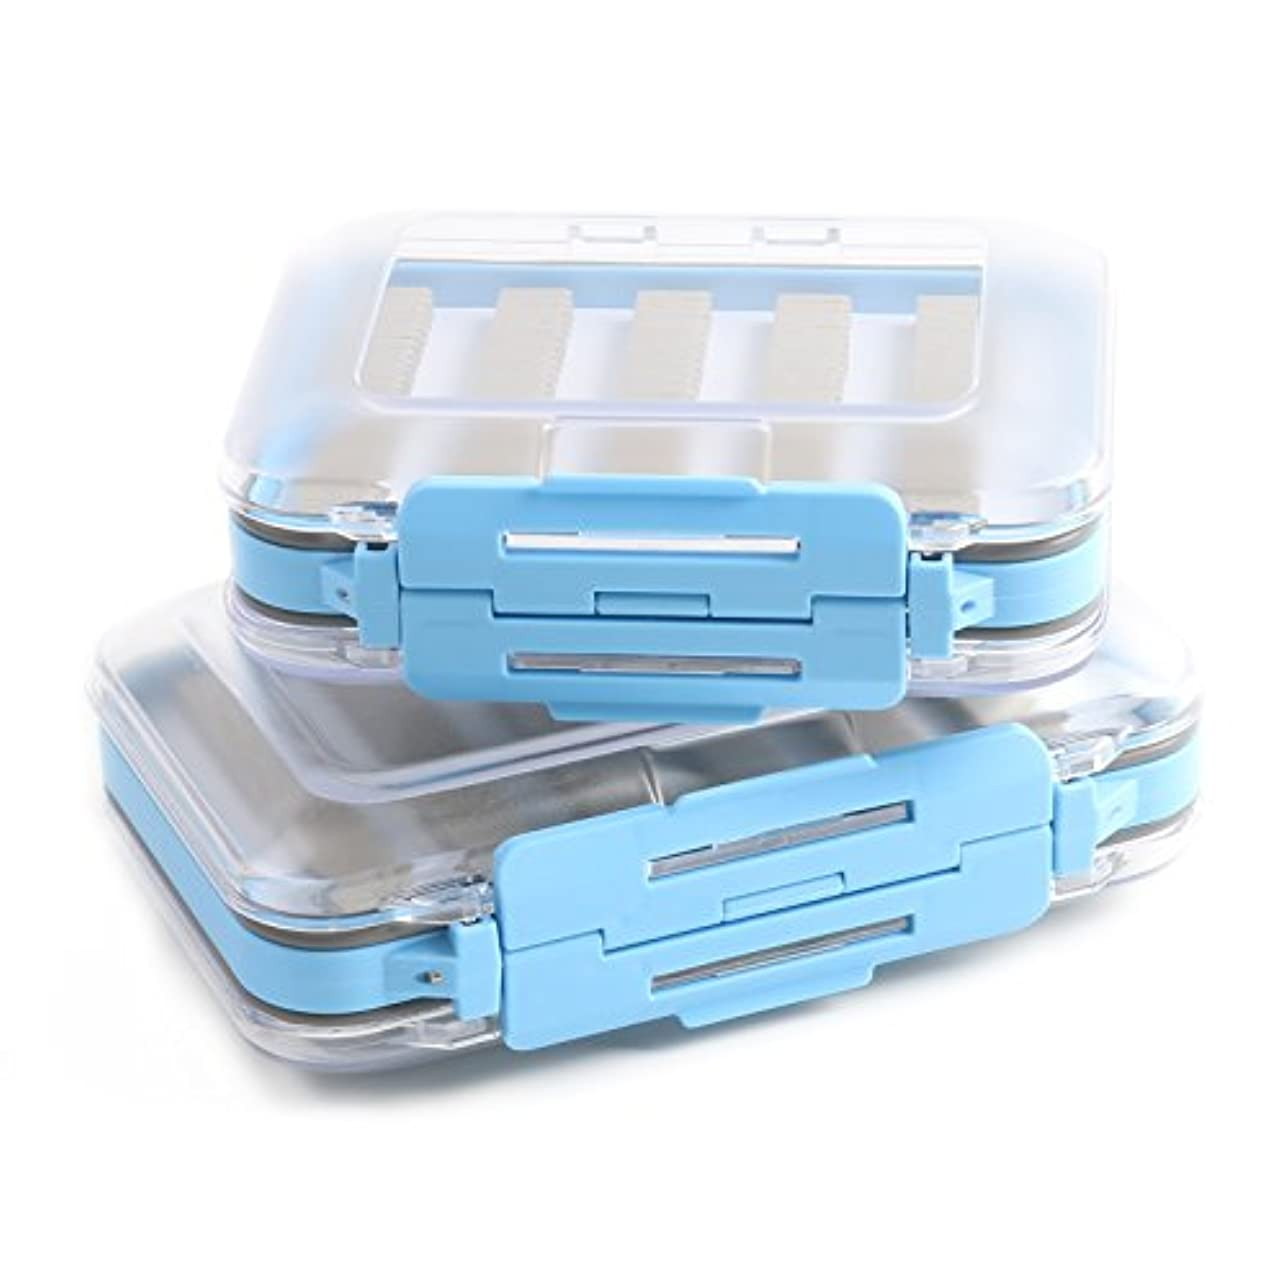 Clear B Blesiya Waterprooof Fly Fishing Tackle Box Lures Spoon Hook Bait Storage Box Case with 12 Compartments